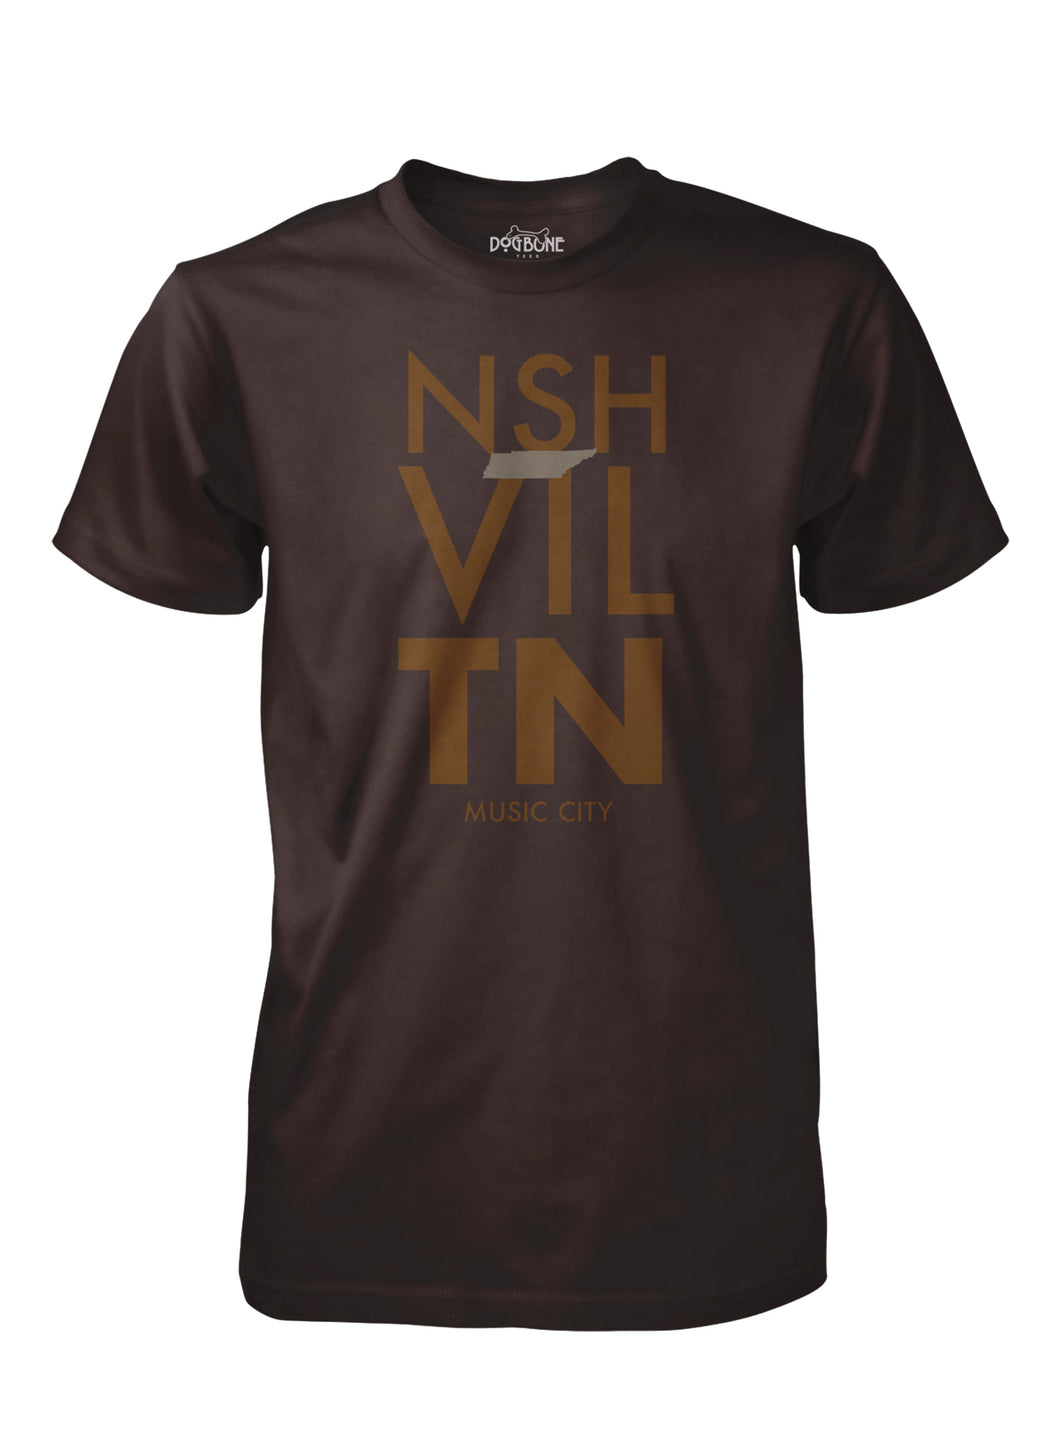 NSH VIL TN Stacked Dark Chocolate